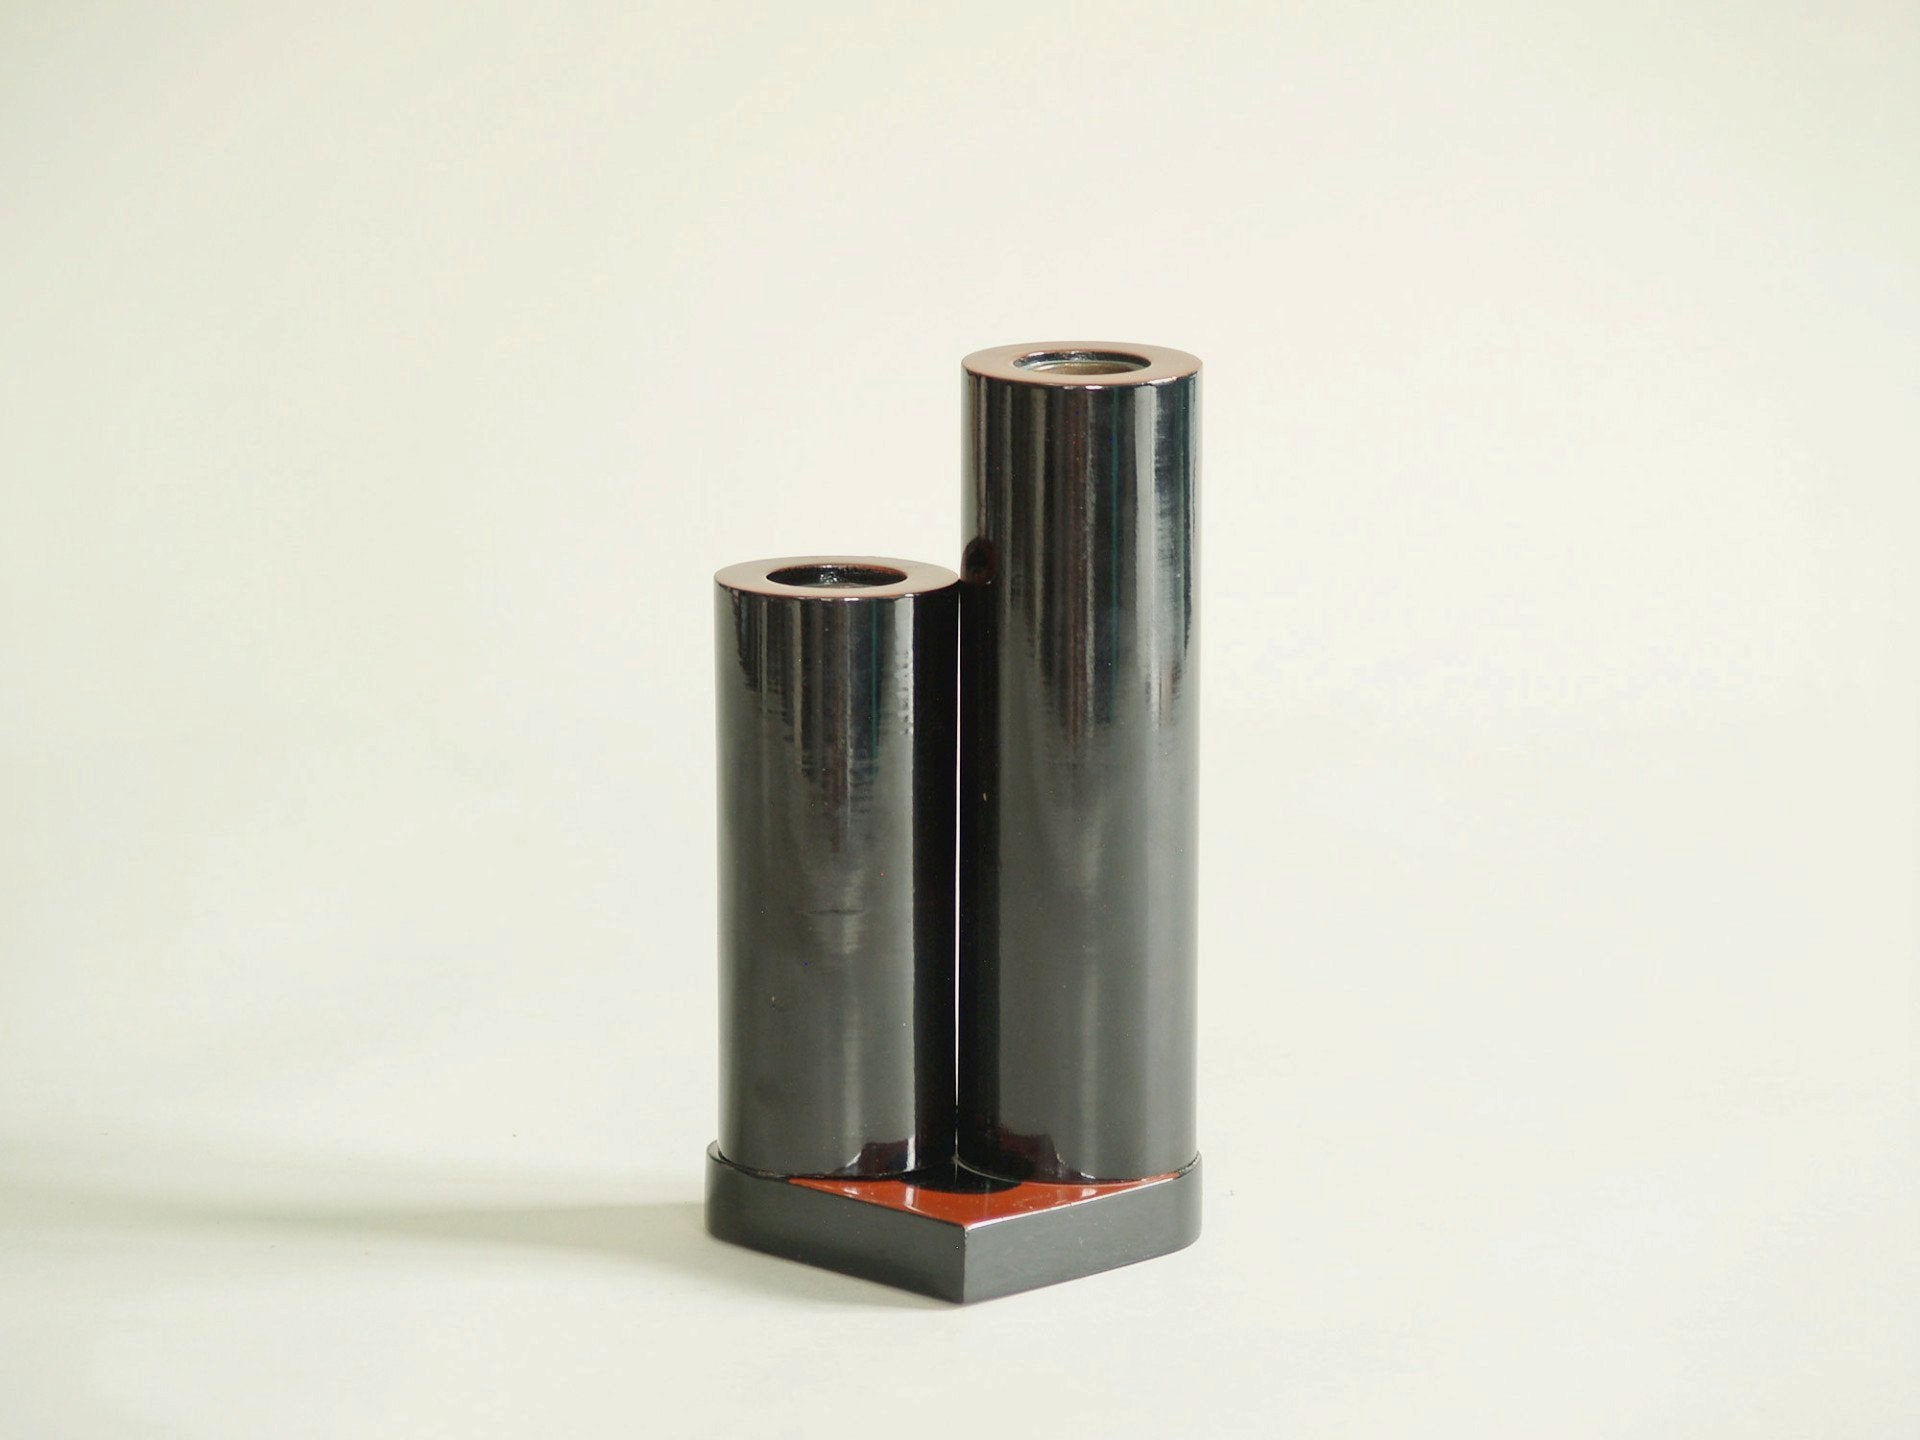 Vase double en laque Atelier Zohiko, Japon (vers 1960)..Urushi lacquered double vase Zohiko workshop, Japan (circa 1960)